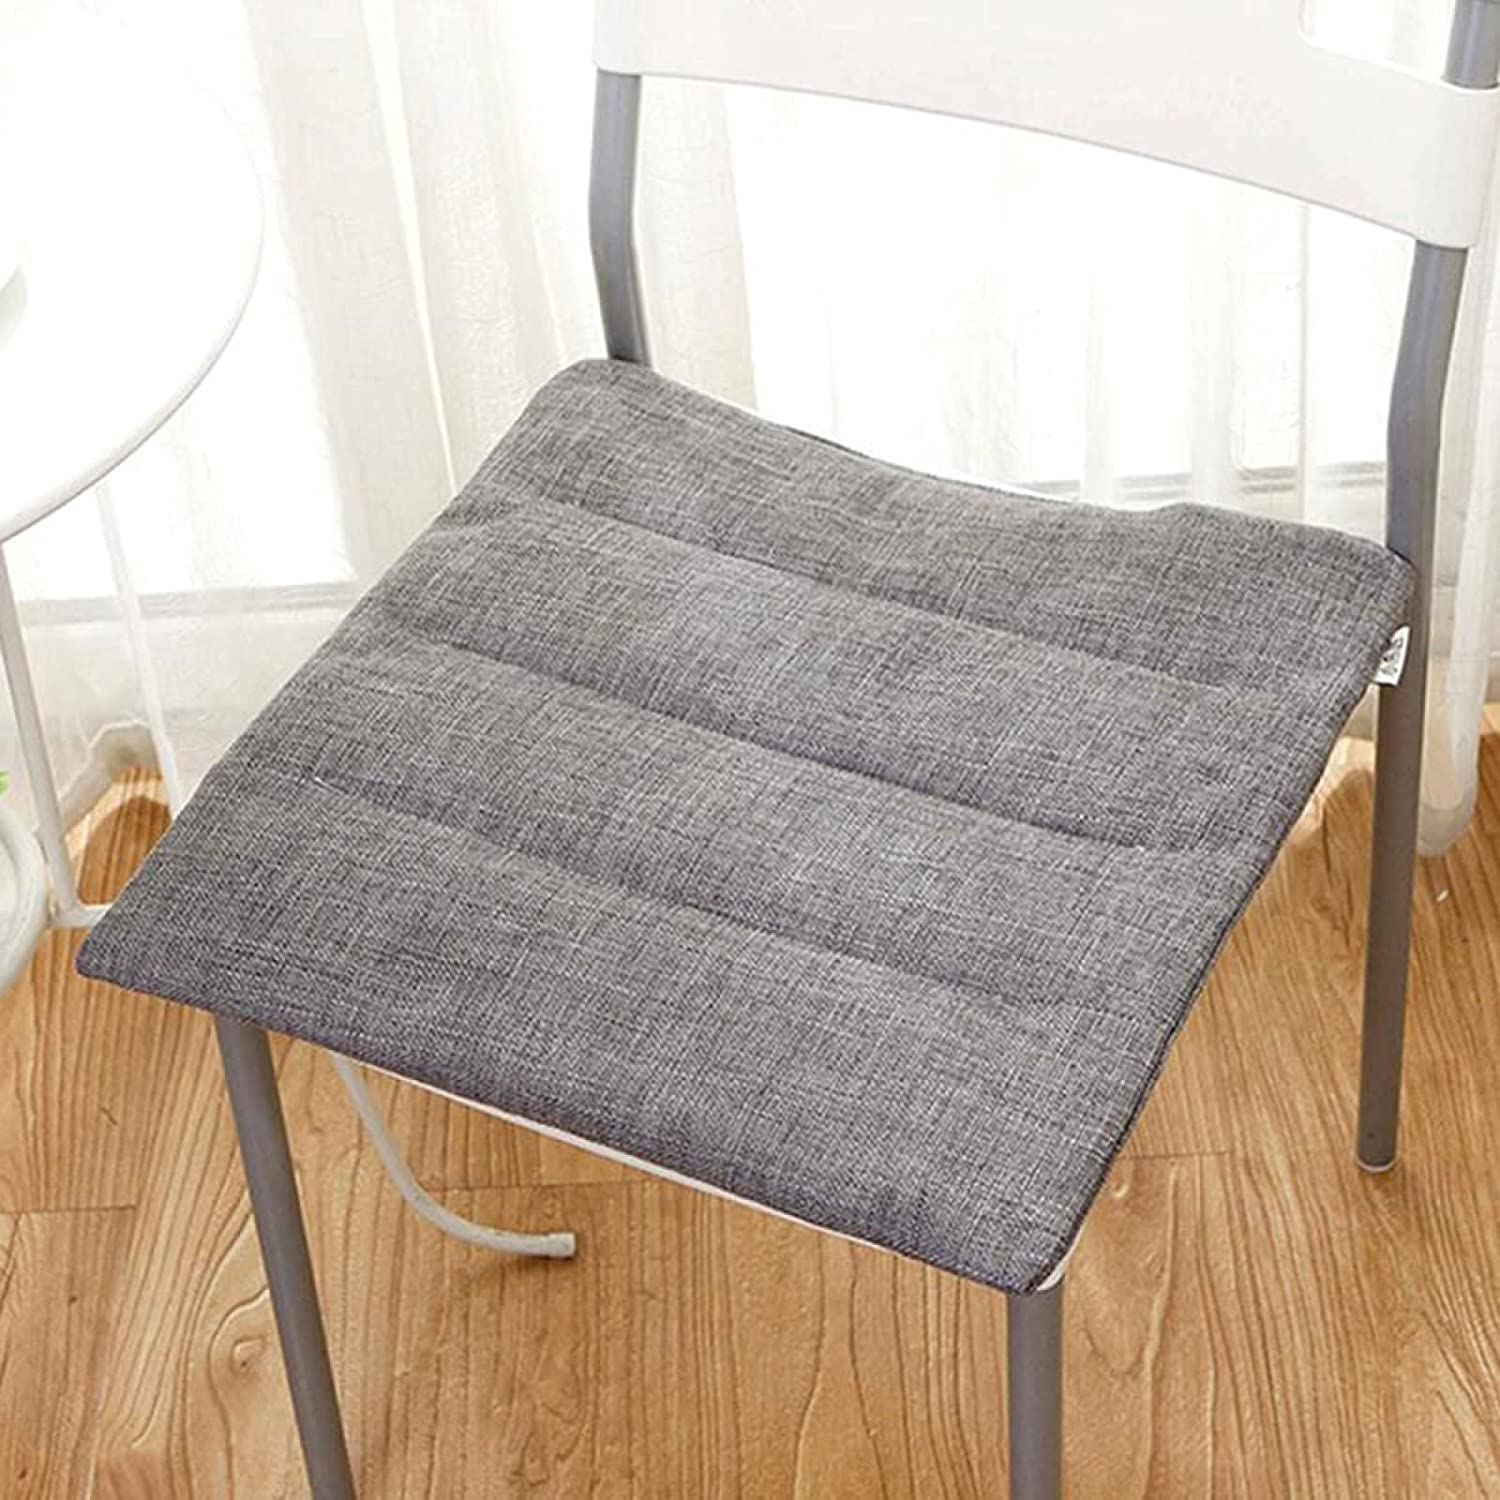 Chair Cushions with Ties Seat Pads Chairs Dining Popular brand in the world Squ for Long-awaited Kitchen